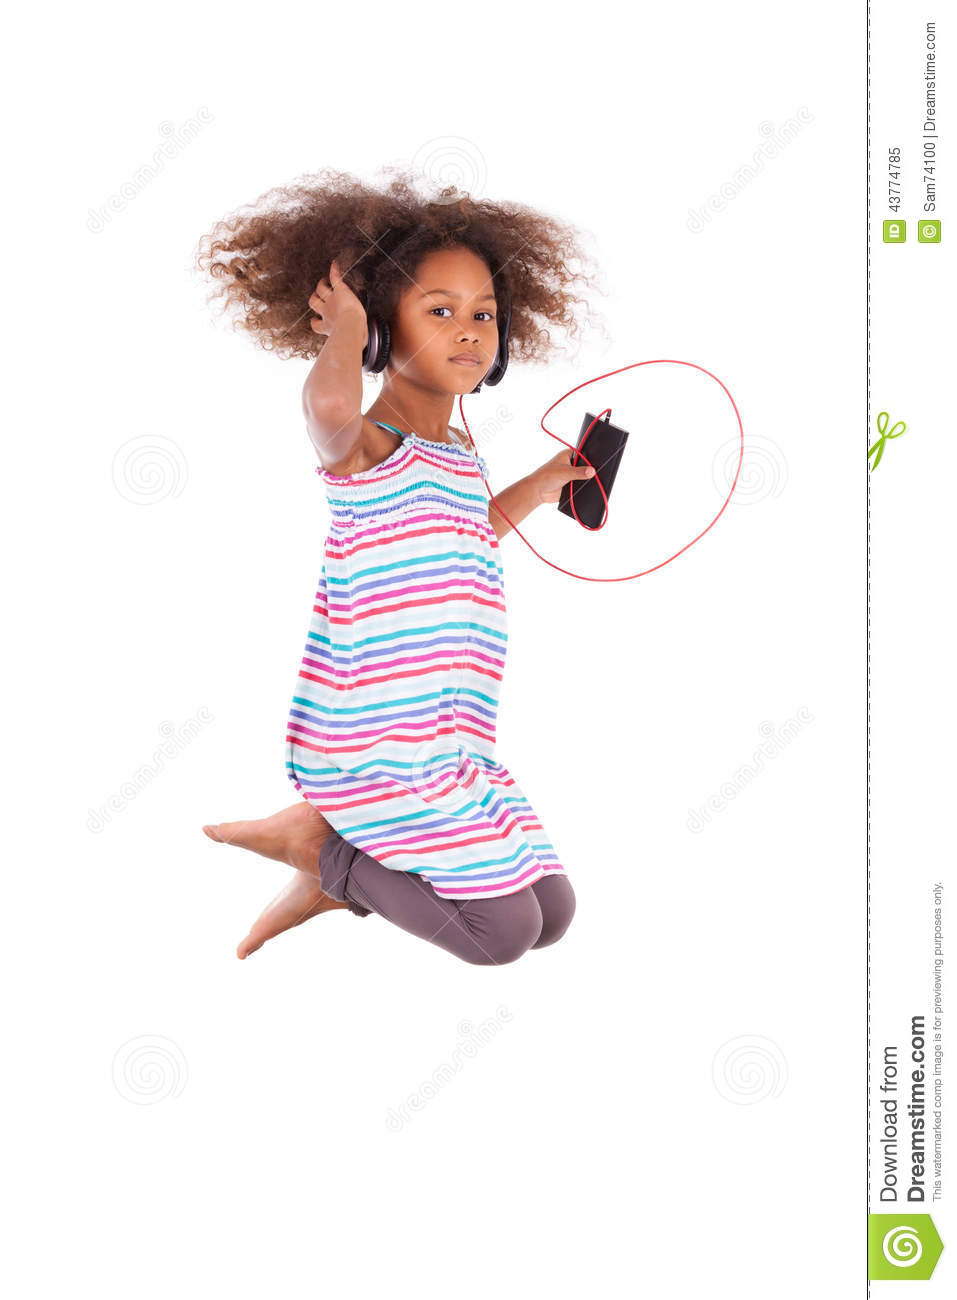 c42a7259 Little african american girl jumping and listening to music, isolated on  white background - Black people